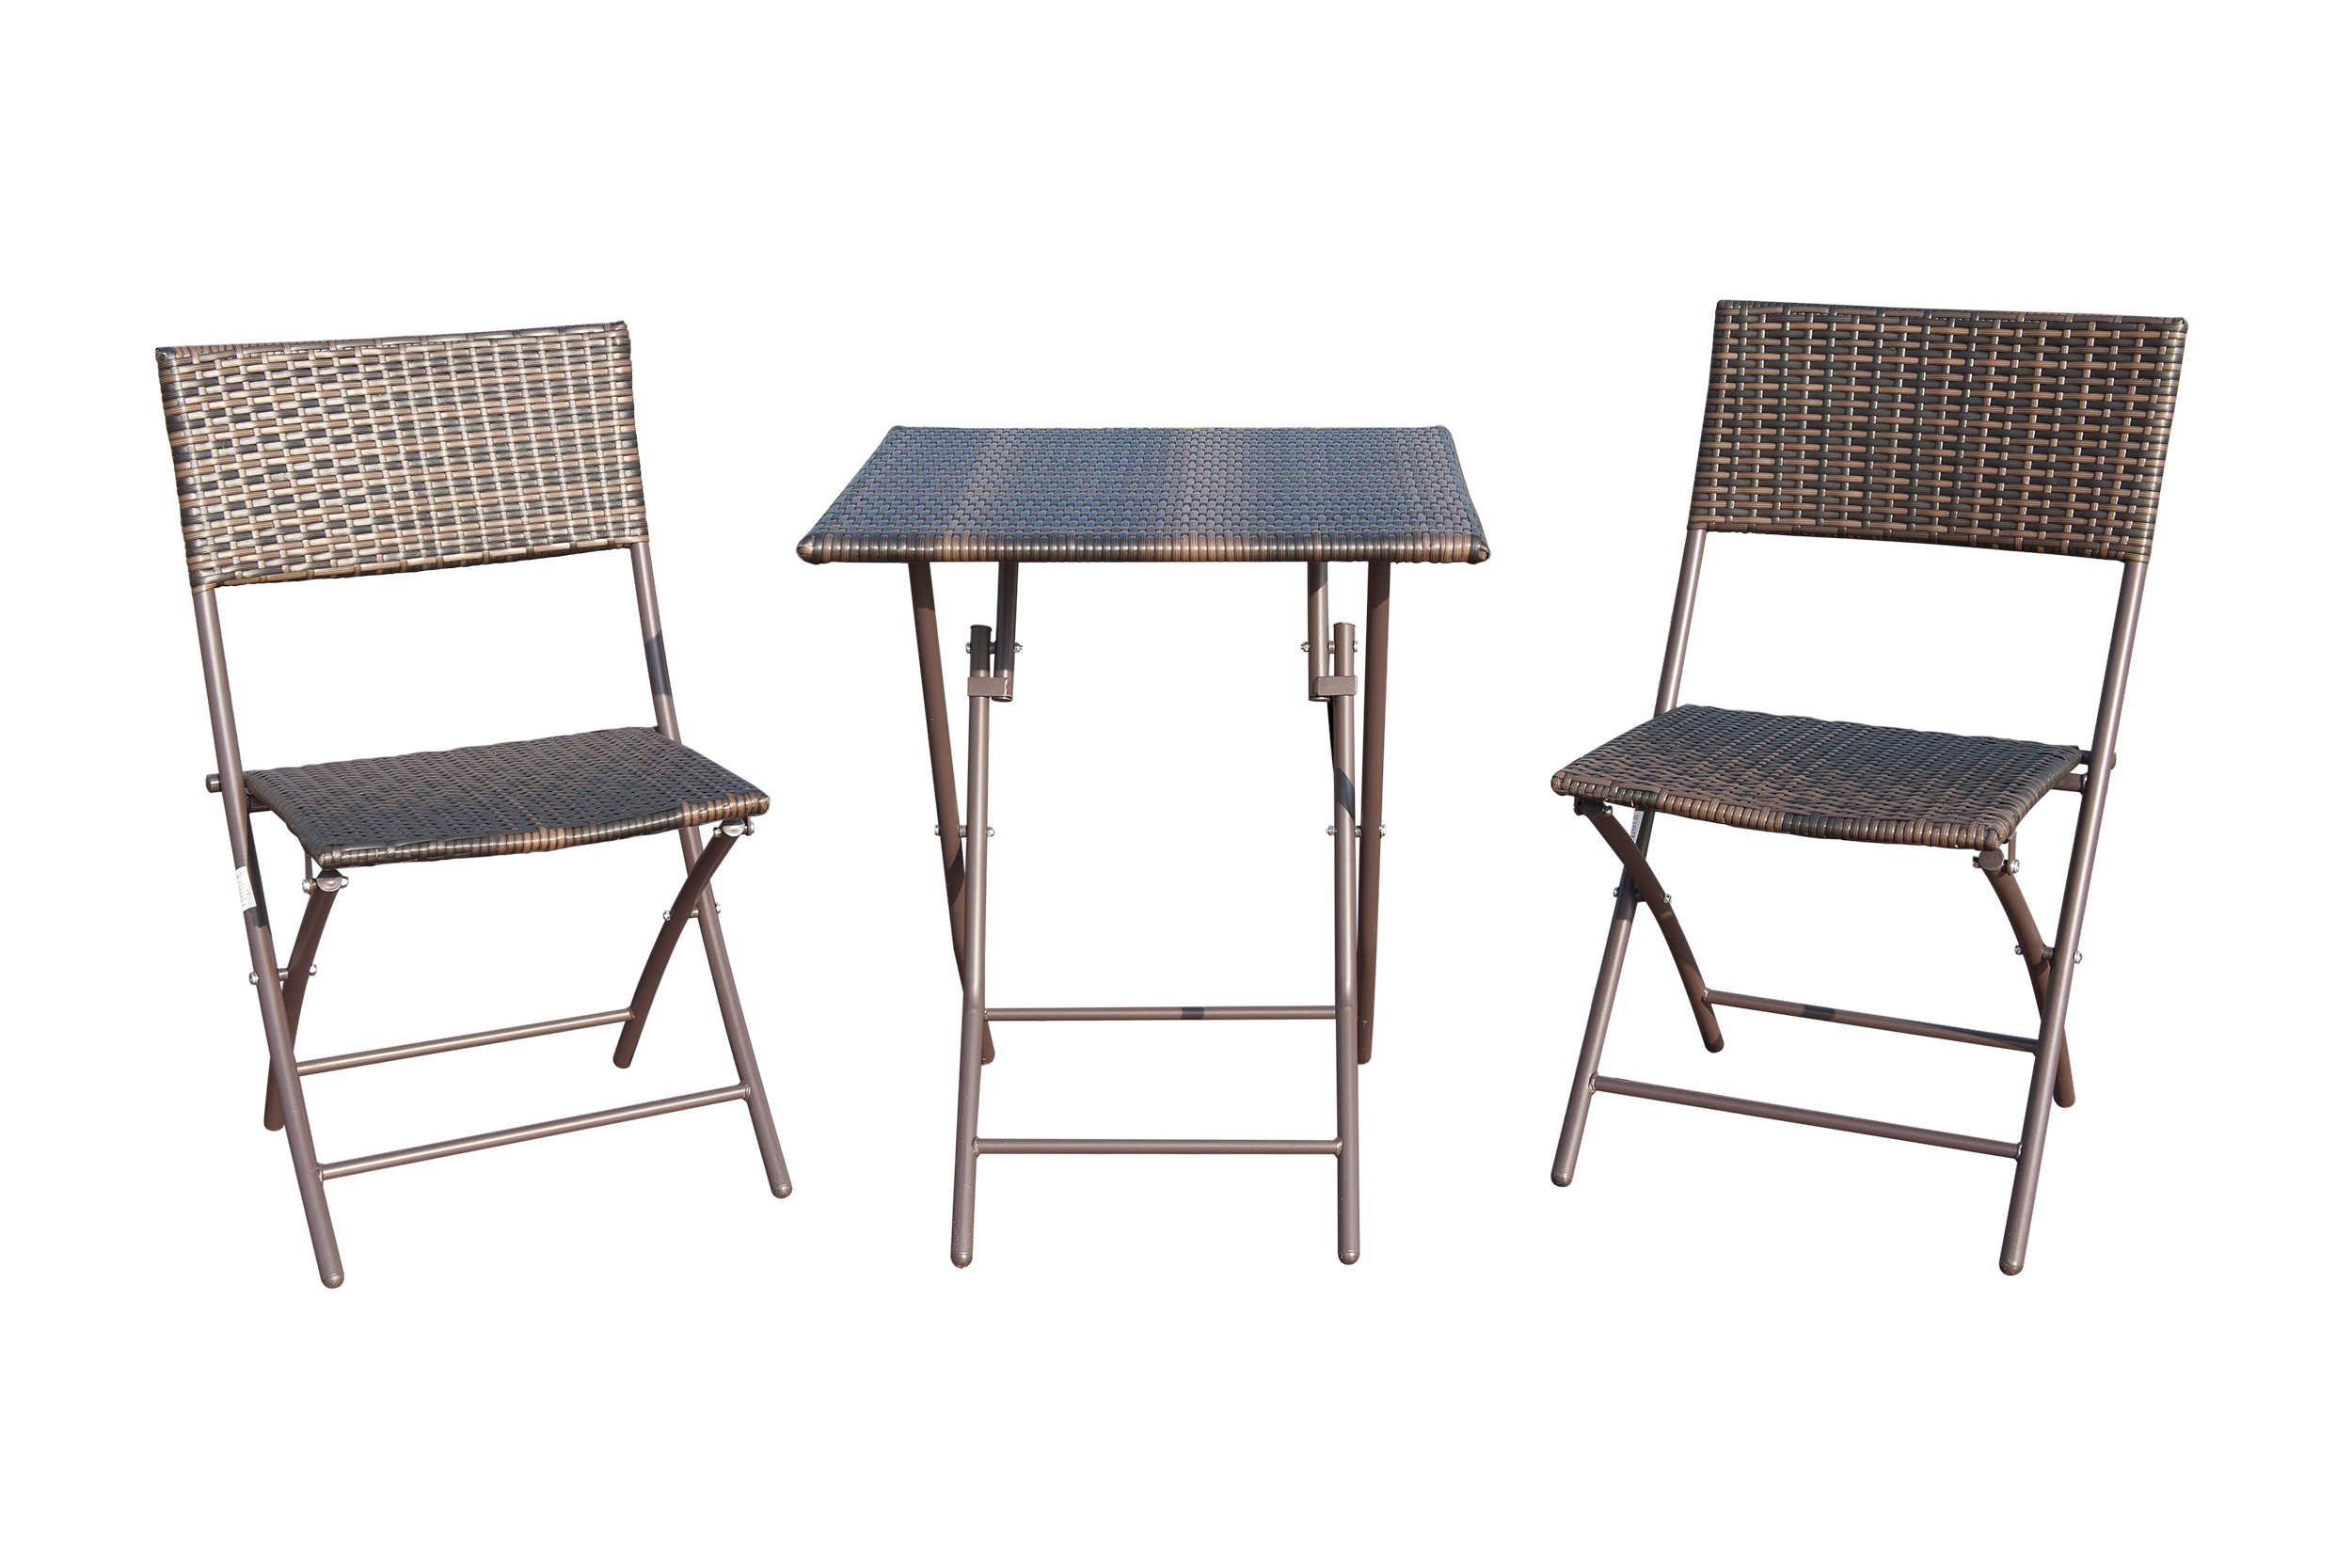 GOJOOASIS 3 Piece Folding Table and Chair Rattan Wicker Furniture Conversation Set Brown